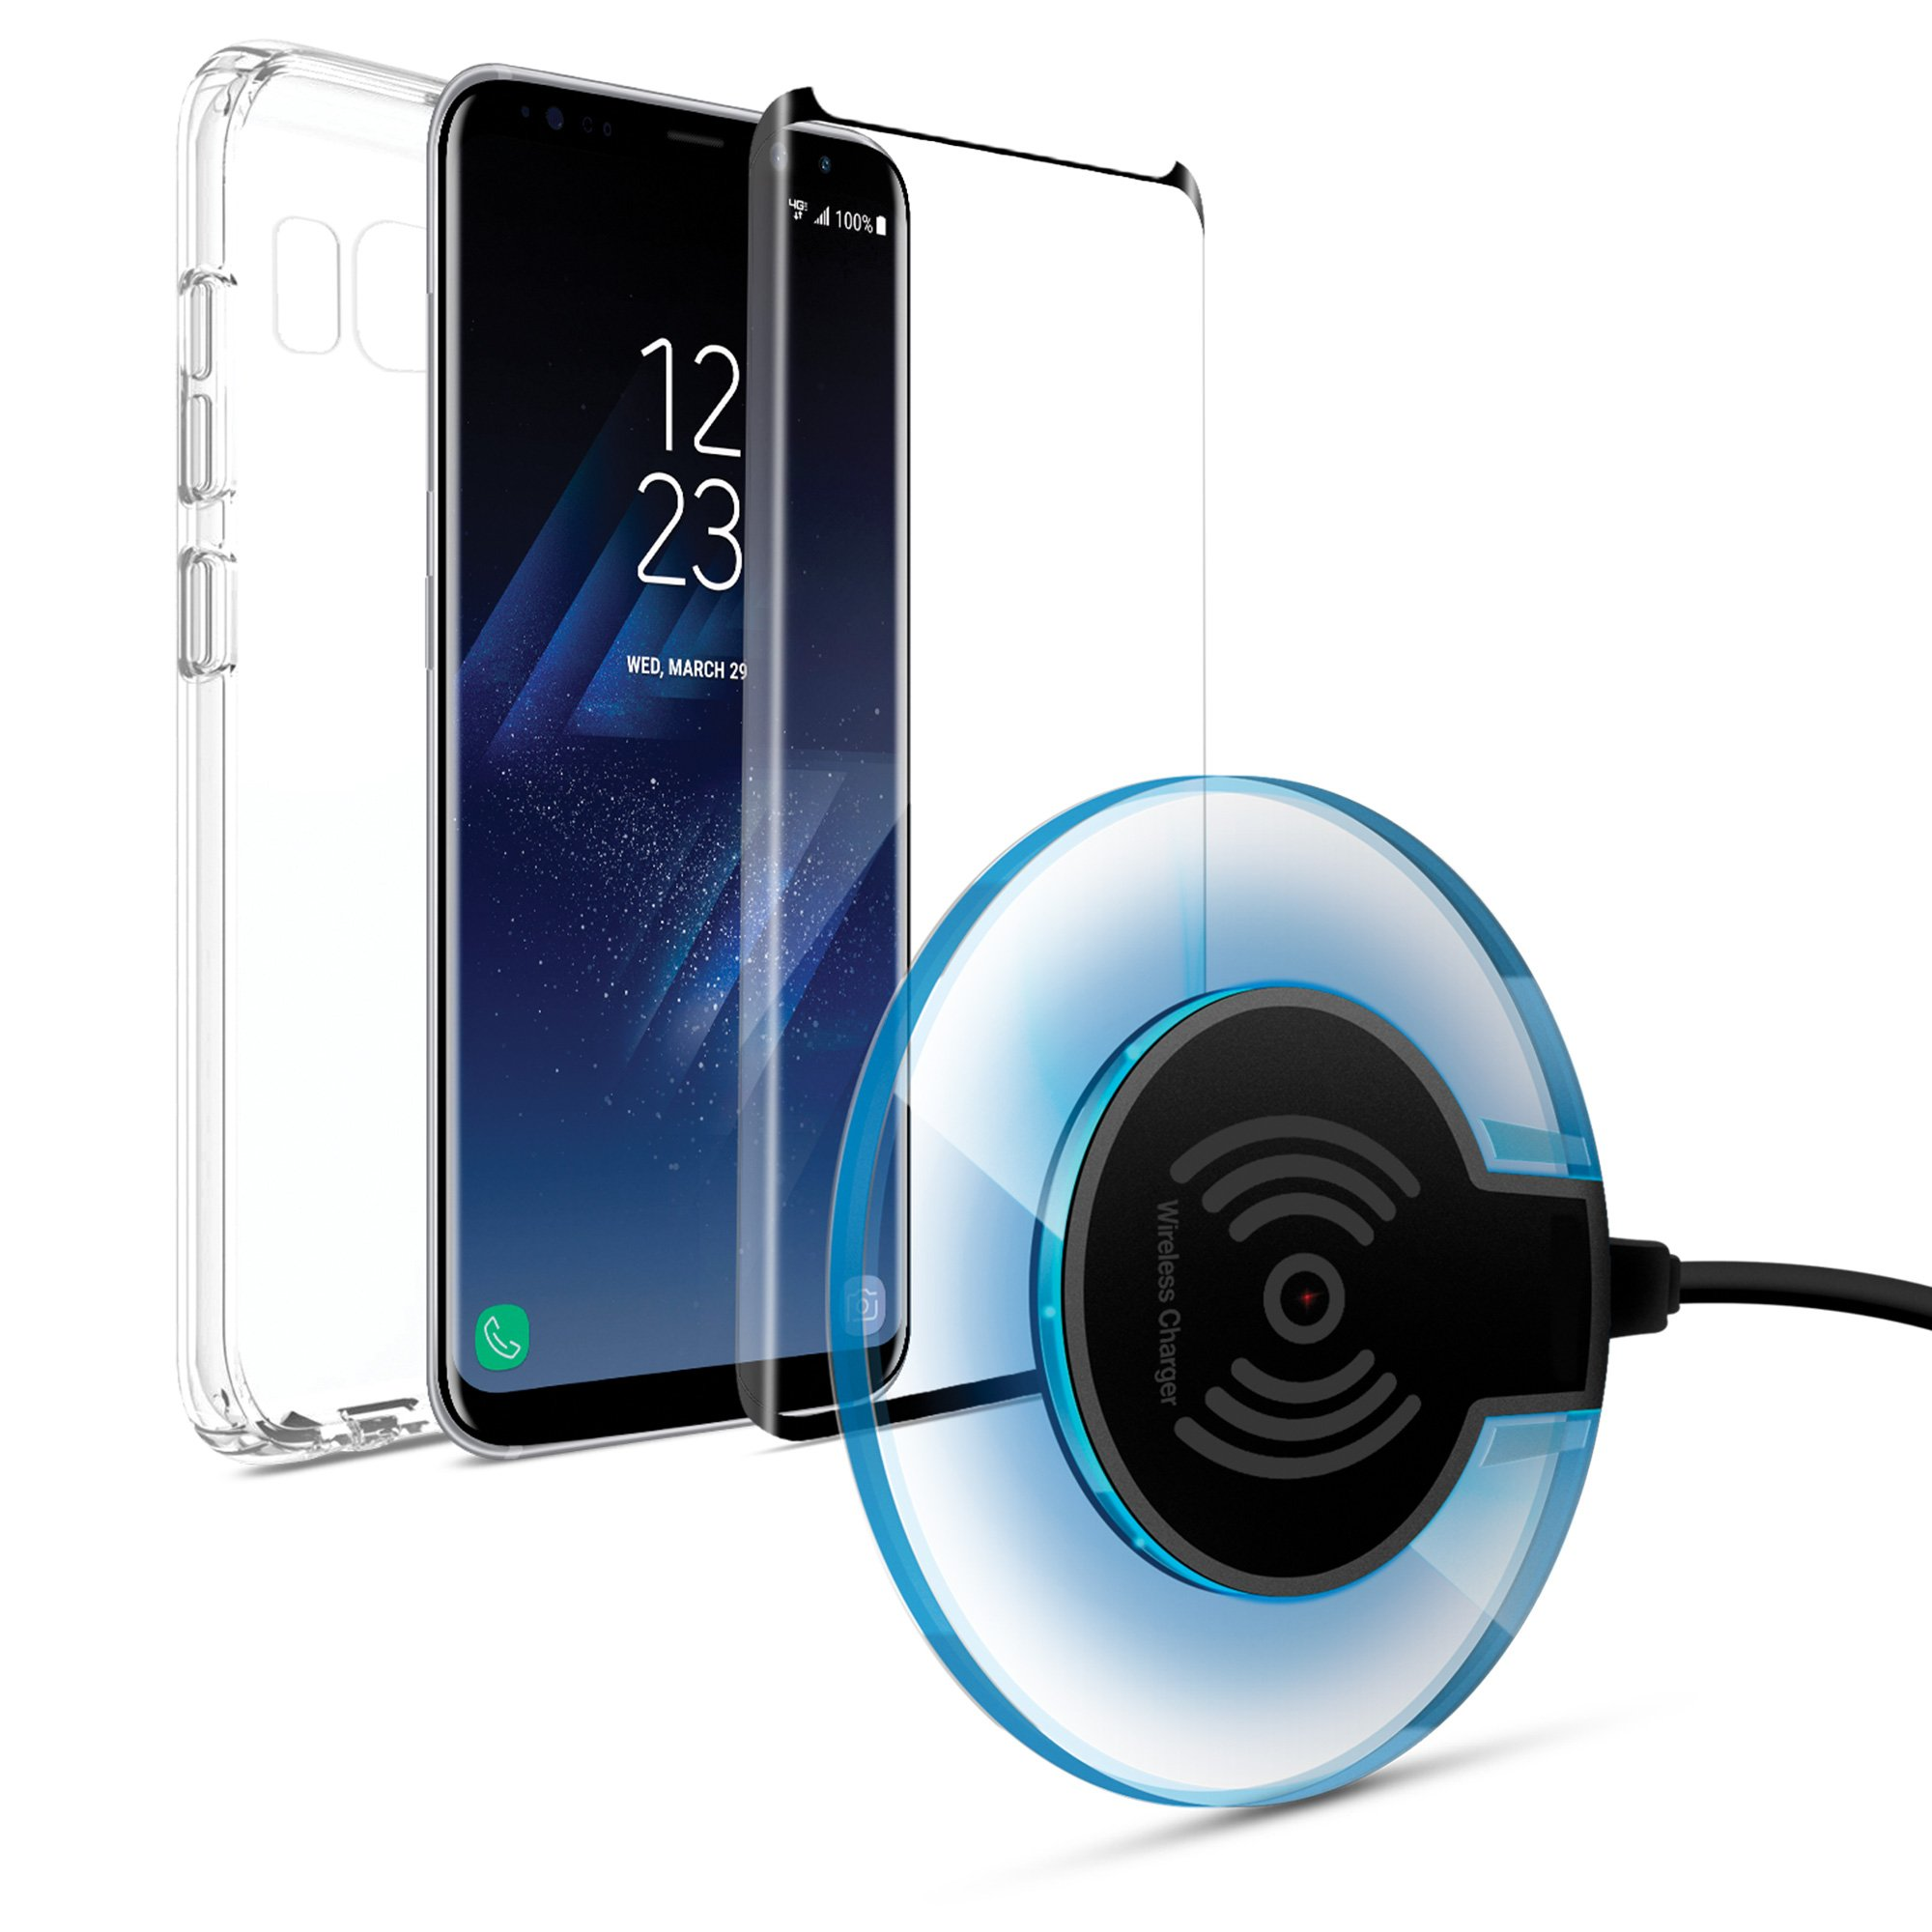 Naztech Wireless Starter Bundle Kit For Galaxy S8. Includes Cable Free Wireless Charging Pad that Chargers Your iPhone On Contact, 9H Tempered Glass Screen Protector/Phone Case For Qi-Enabled Devices.